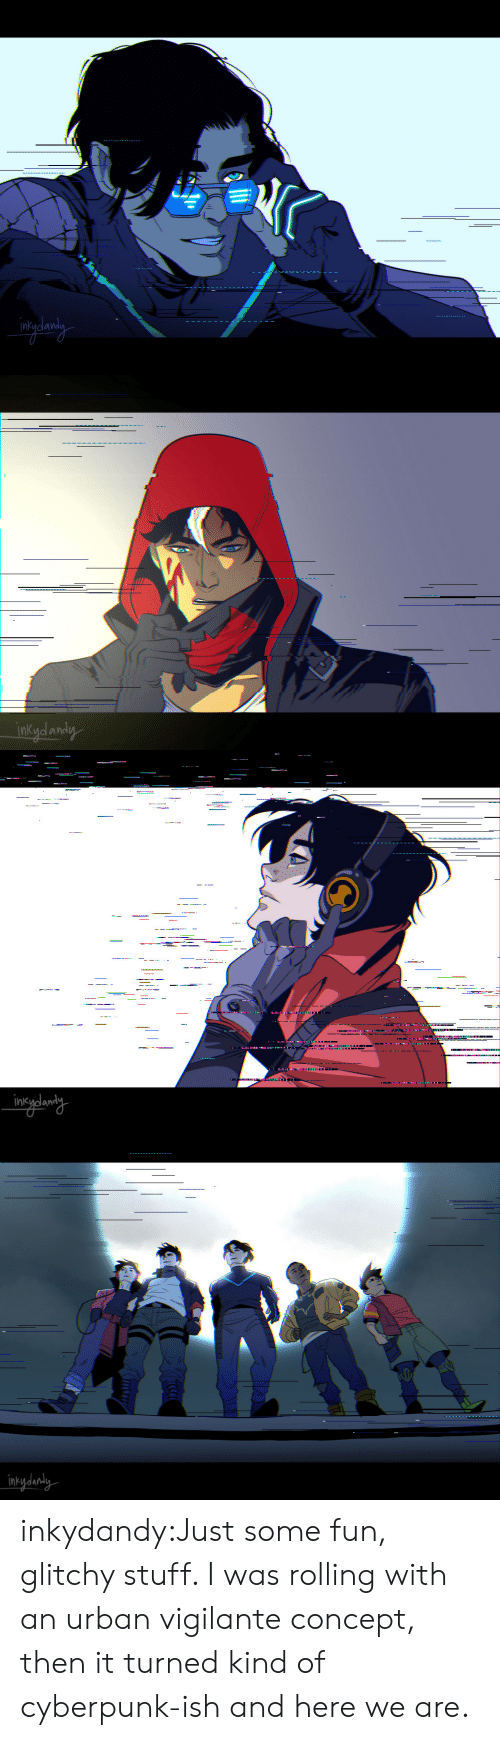 Vigilante: inkydandy   ------.-  .  intydanaly inkydandy:Just some fun, glitchy stuff. I was rolling with an urban vigilante concept, then it turned kind of cyberpunk-ish and here we are.